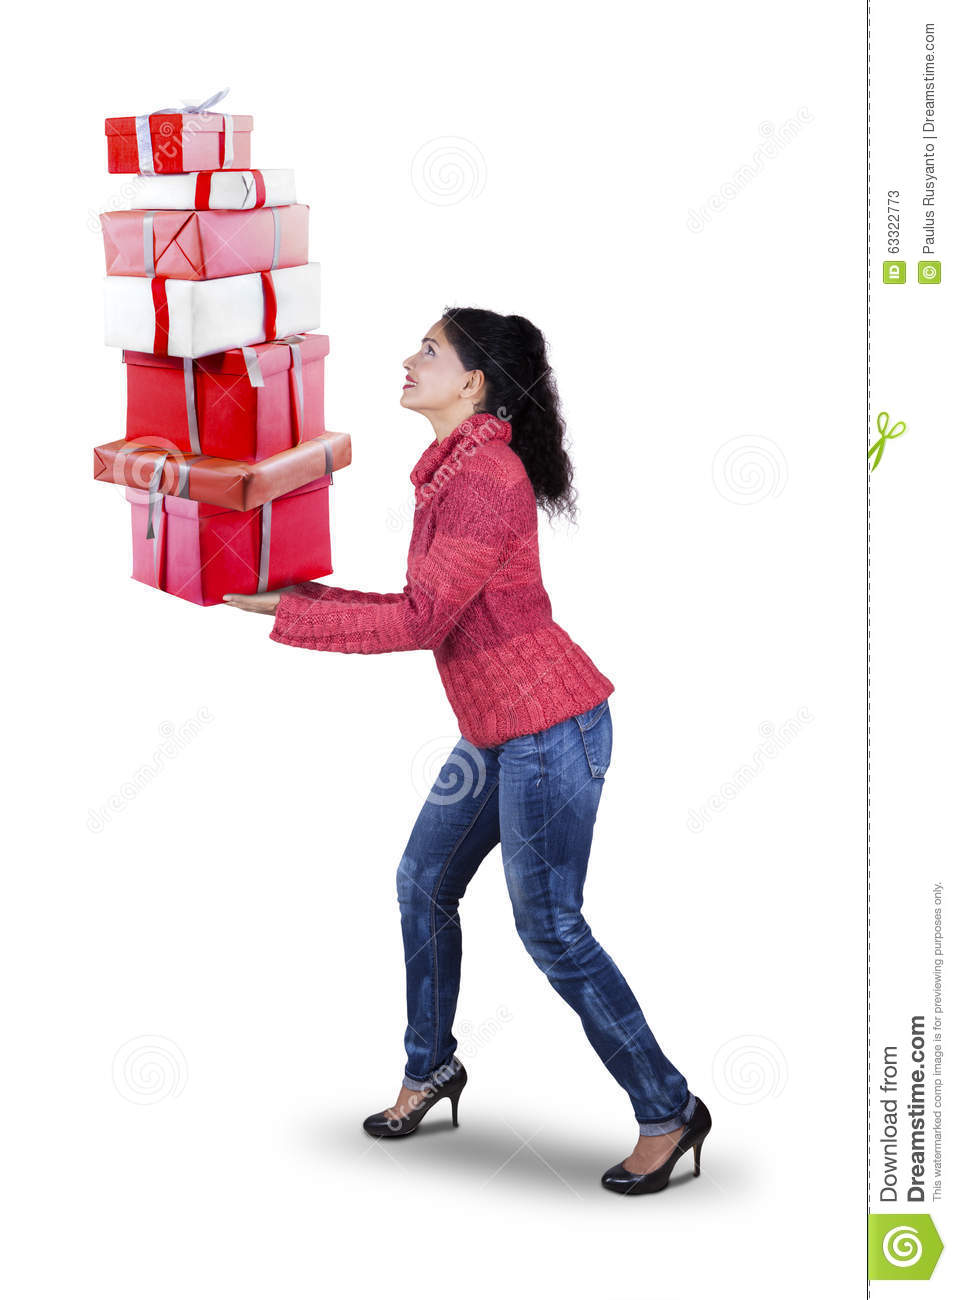 Indian Woman Carrying Christmas Gifts Stock Image - Image of people ...